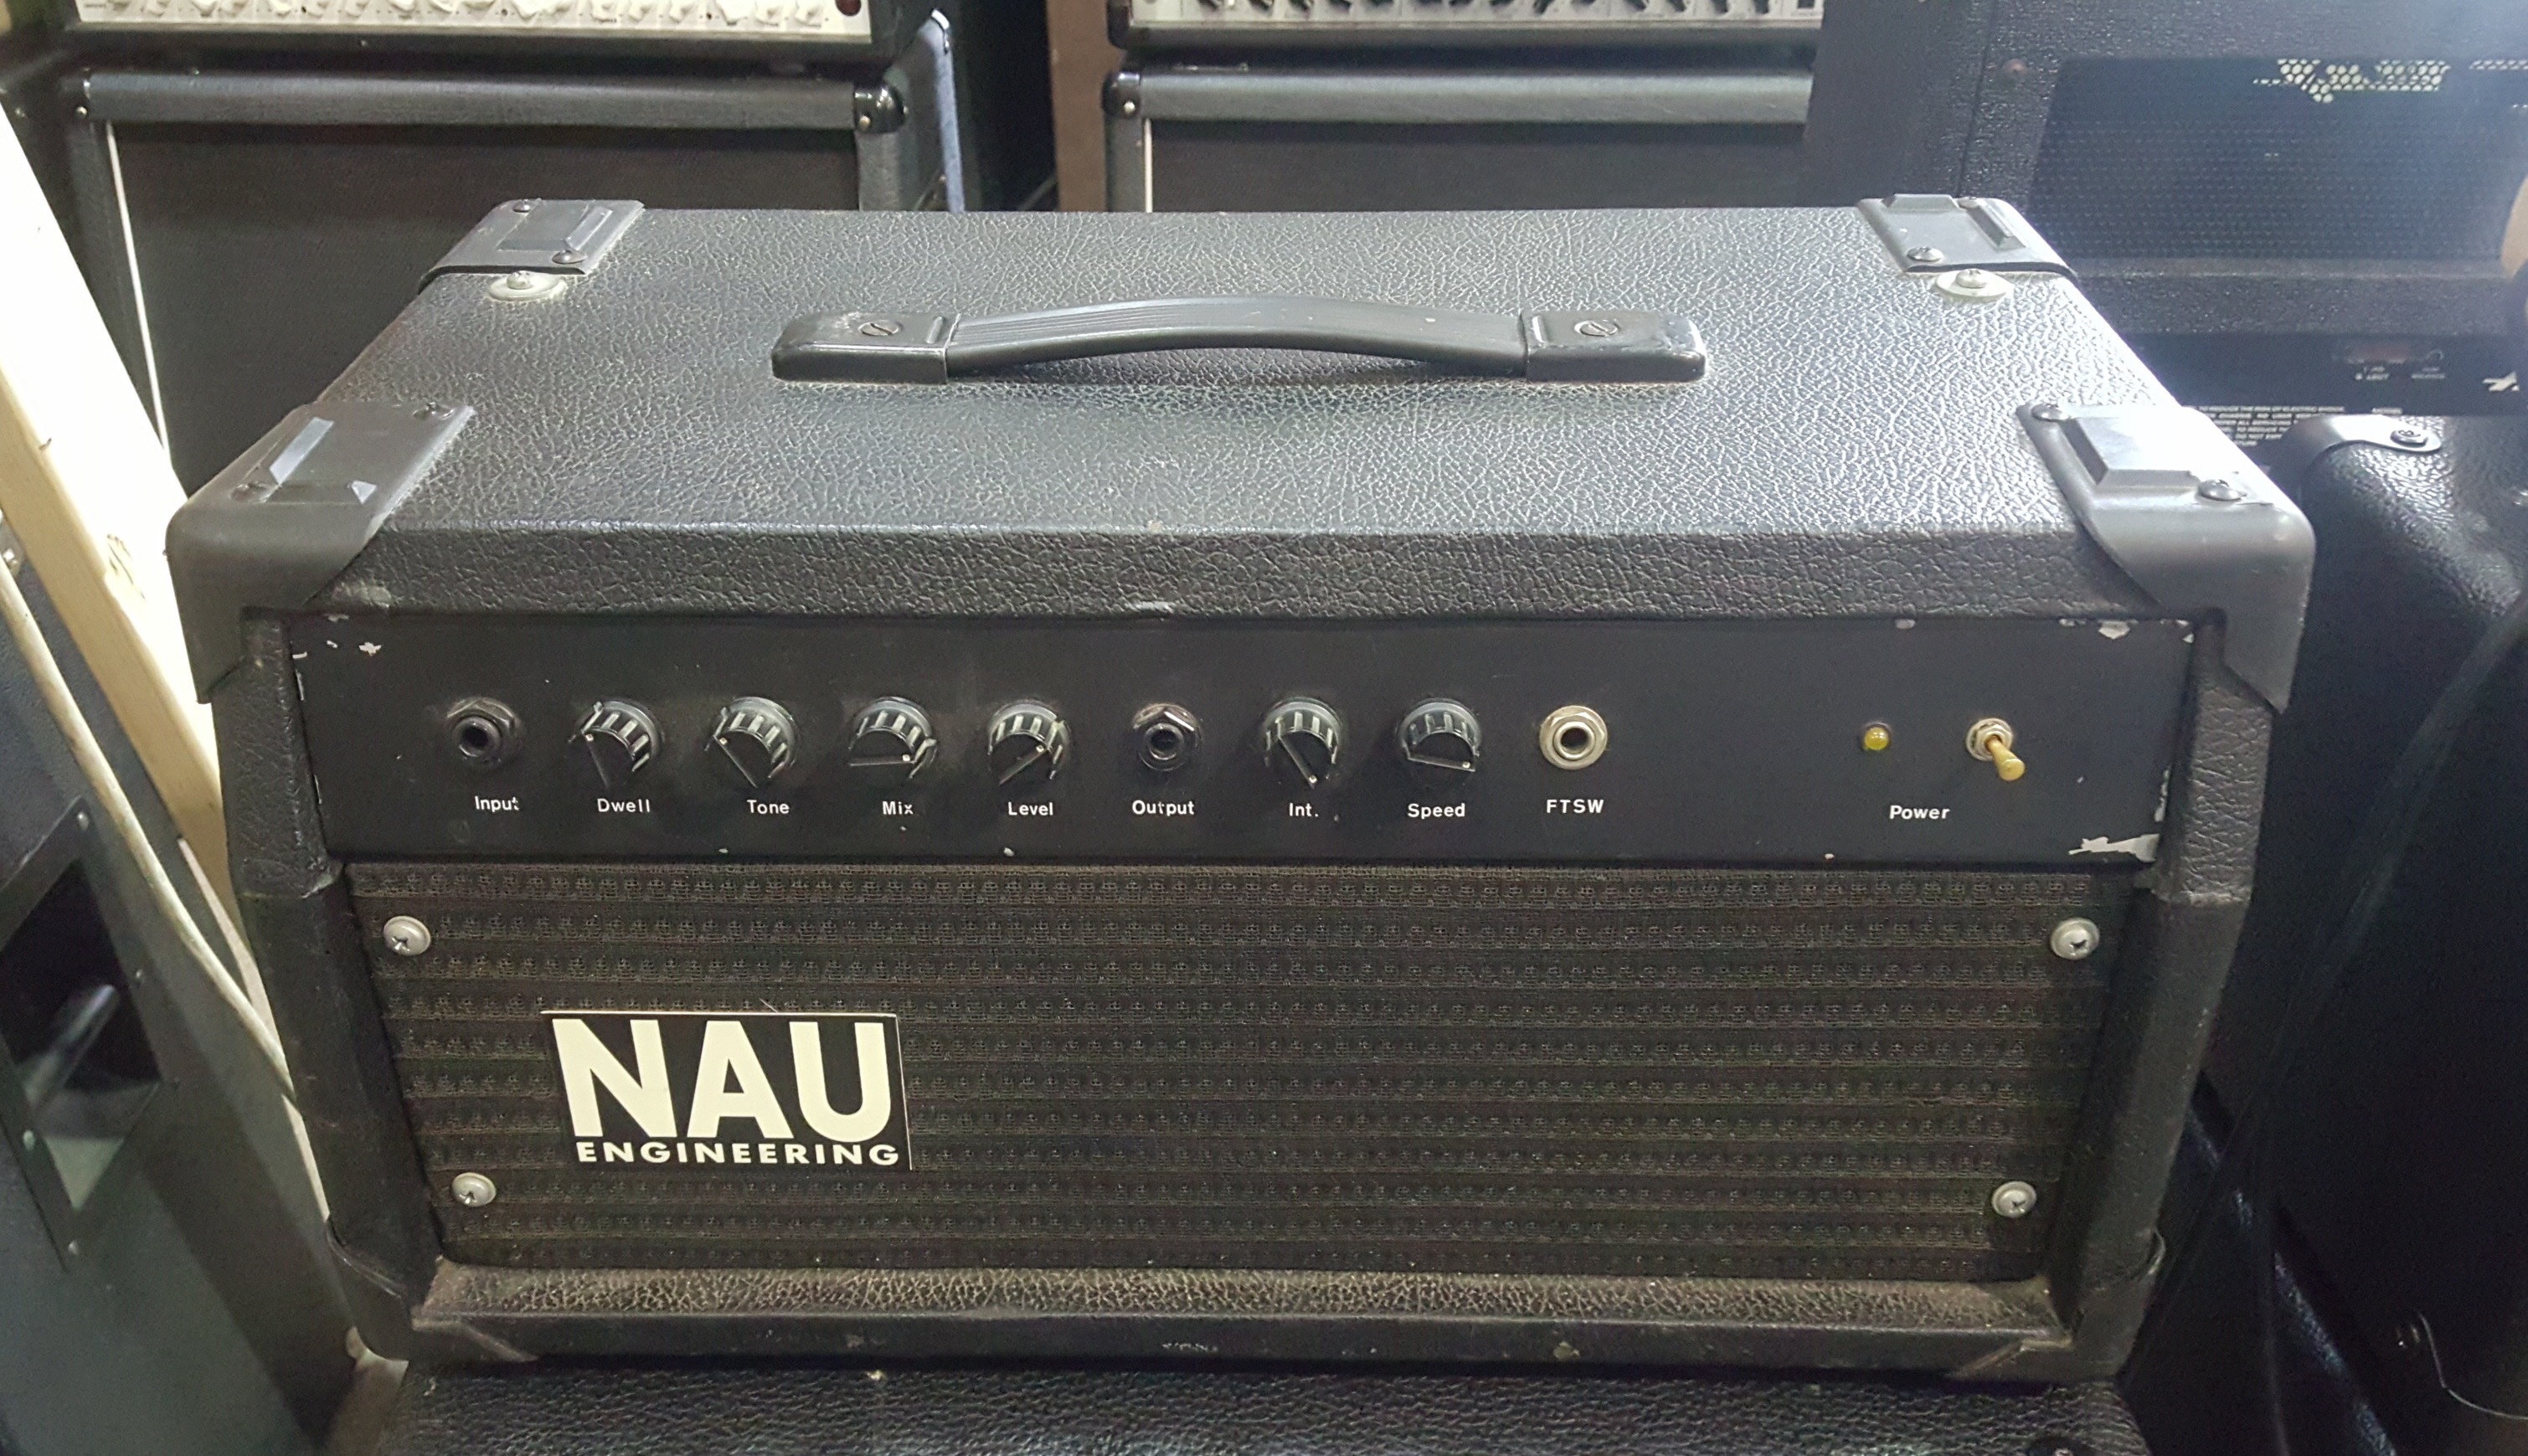 NAU ENGINEERING Tube Reverb / Tremolo Unit